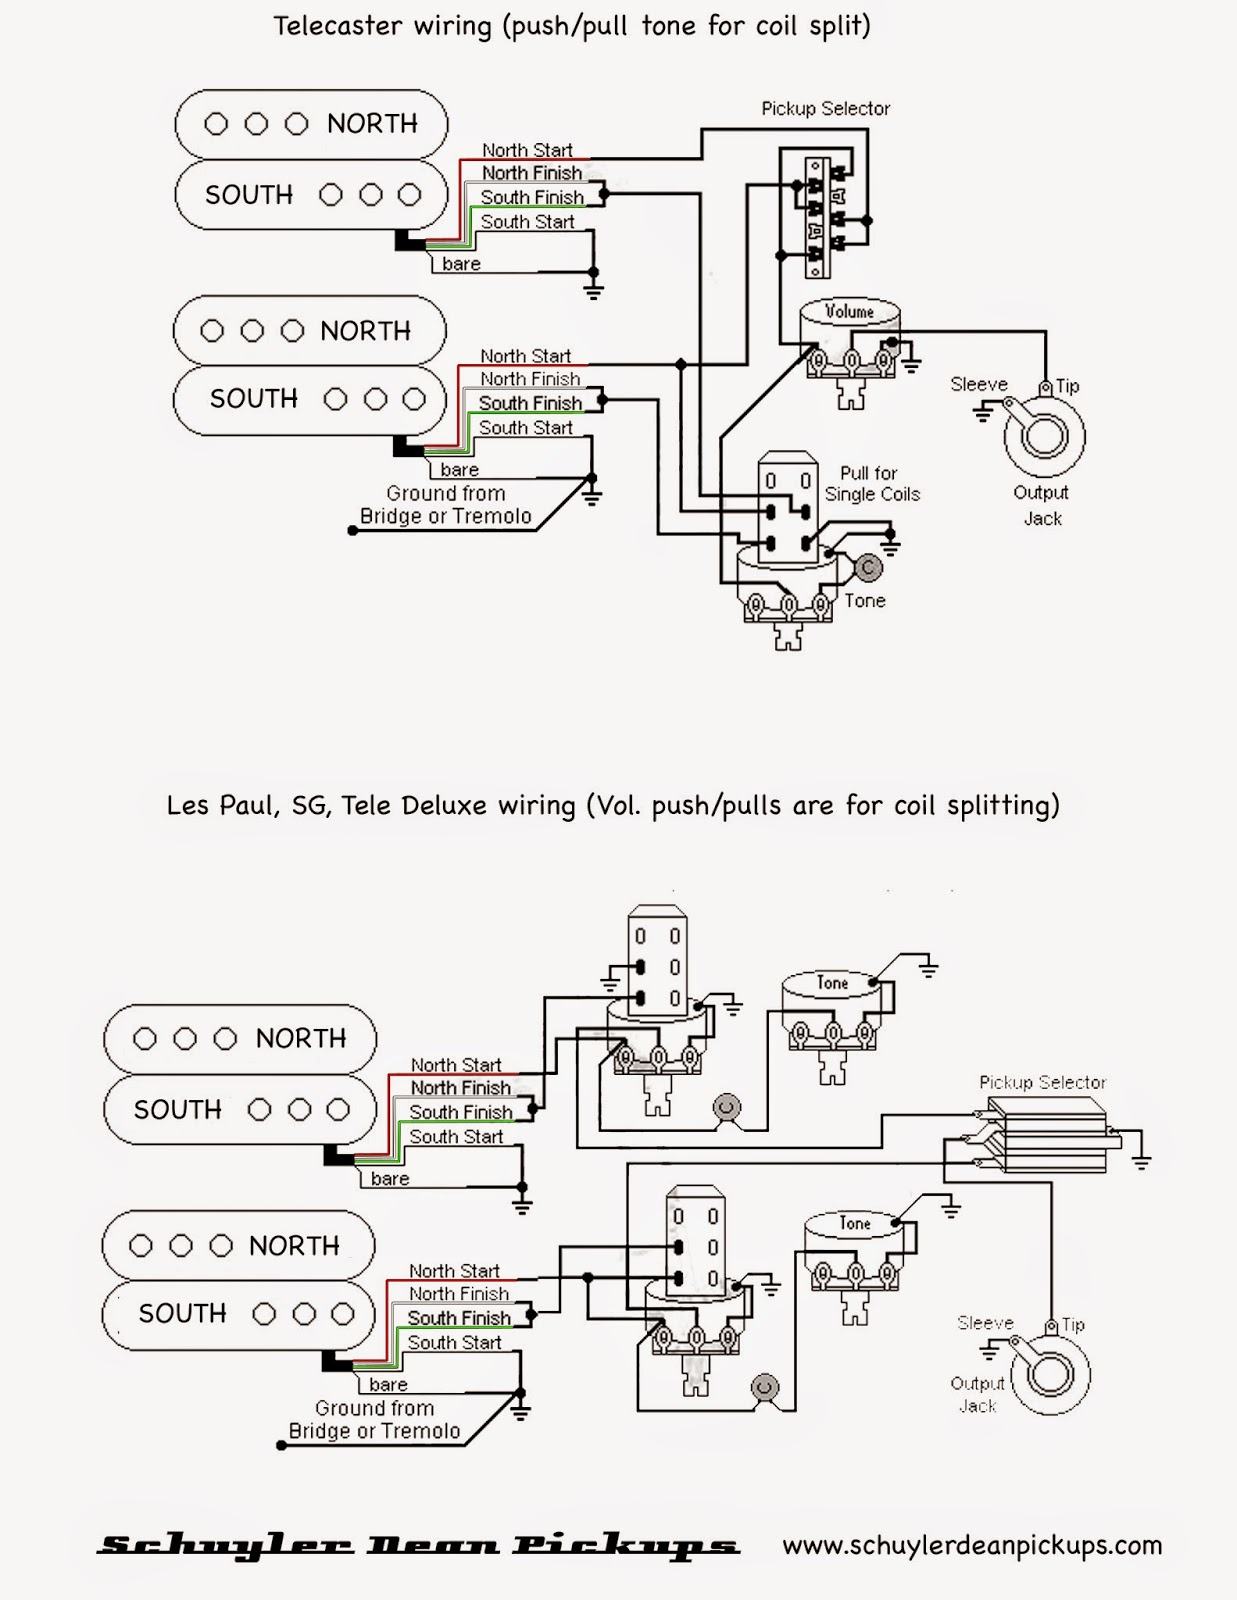 Charming Merco Wiring Diagrams Gallery - Best Image Schematics ...